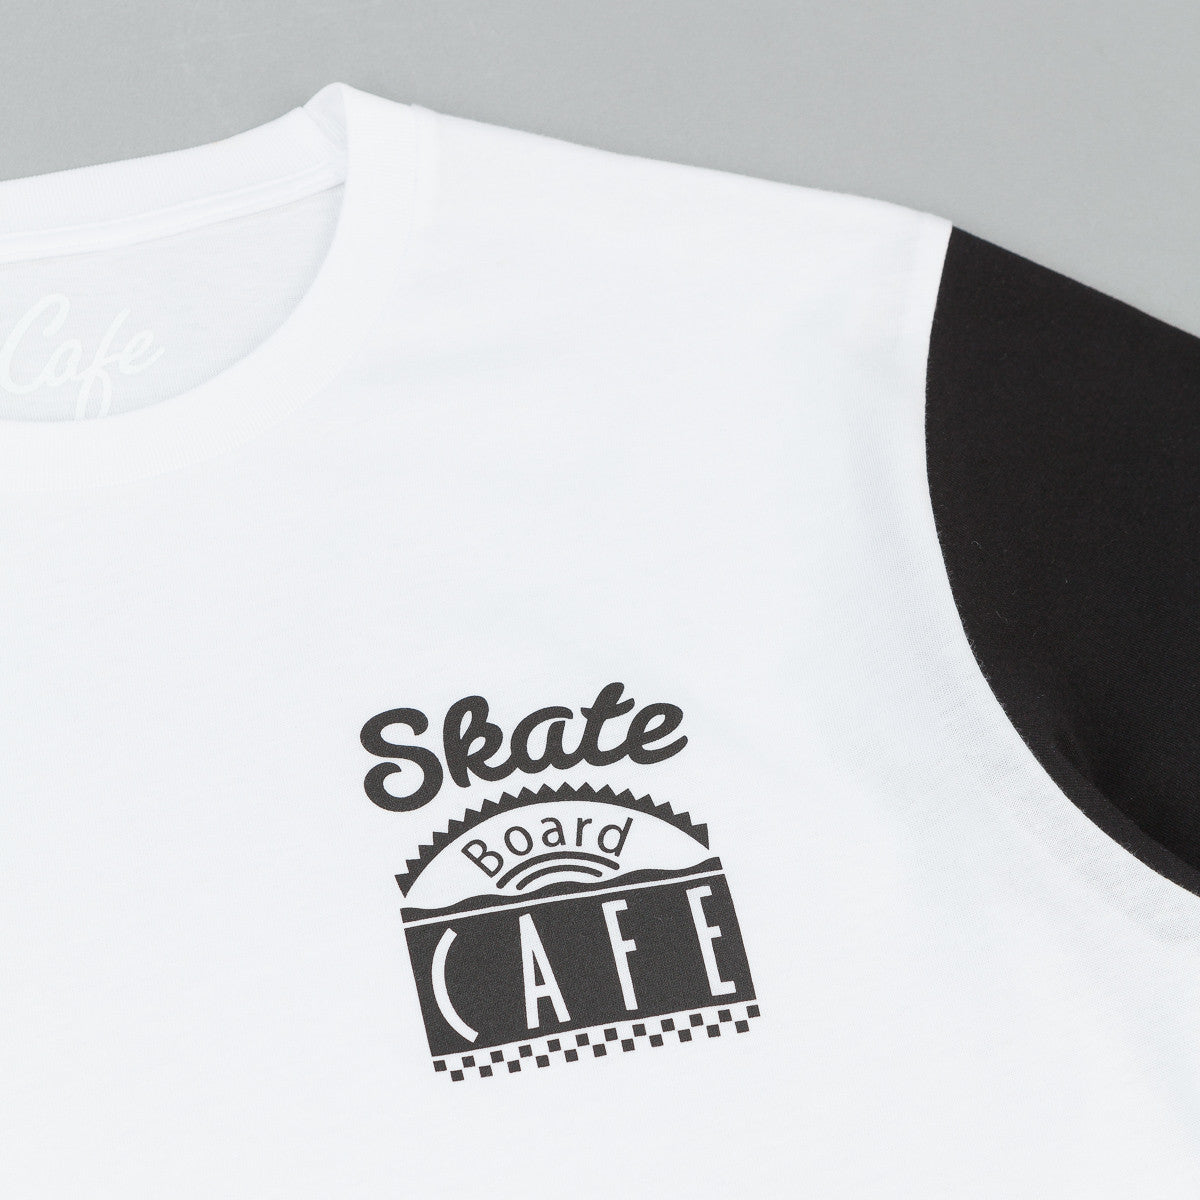 Skateboard Cafe Split T-Shirt - White / Black